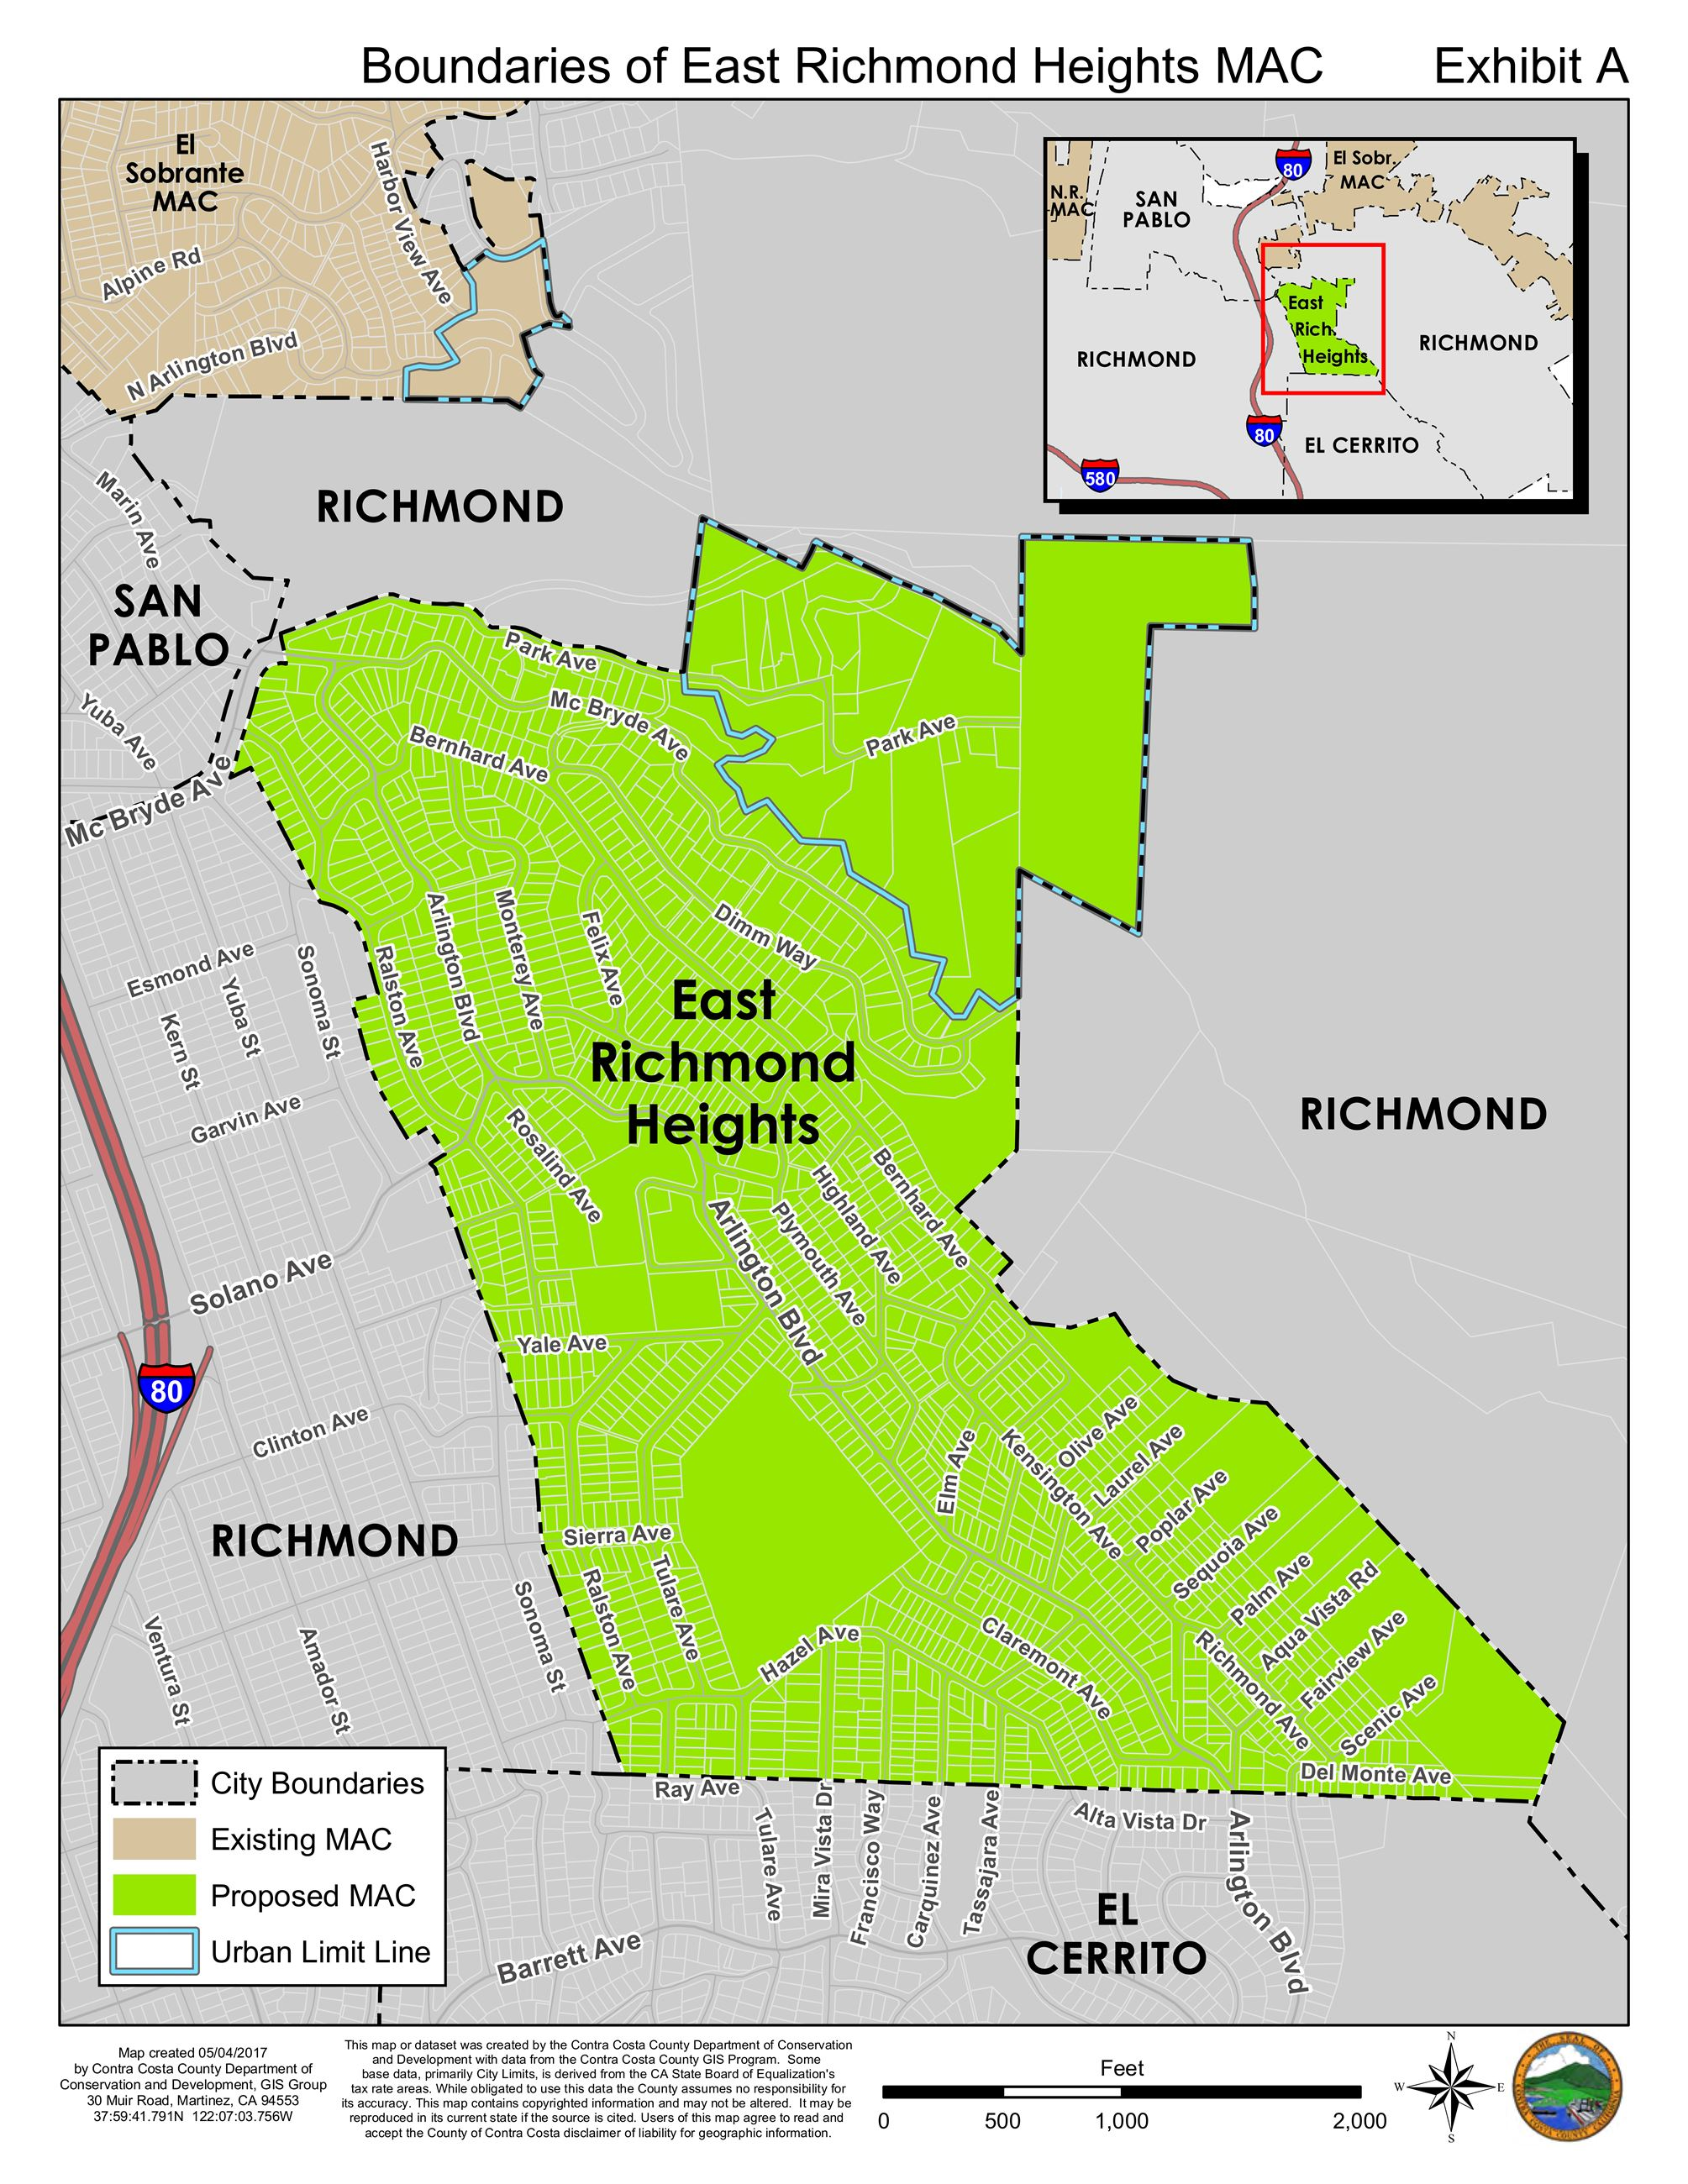 East Richmond Heights MAC Boundaries